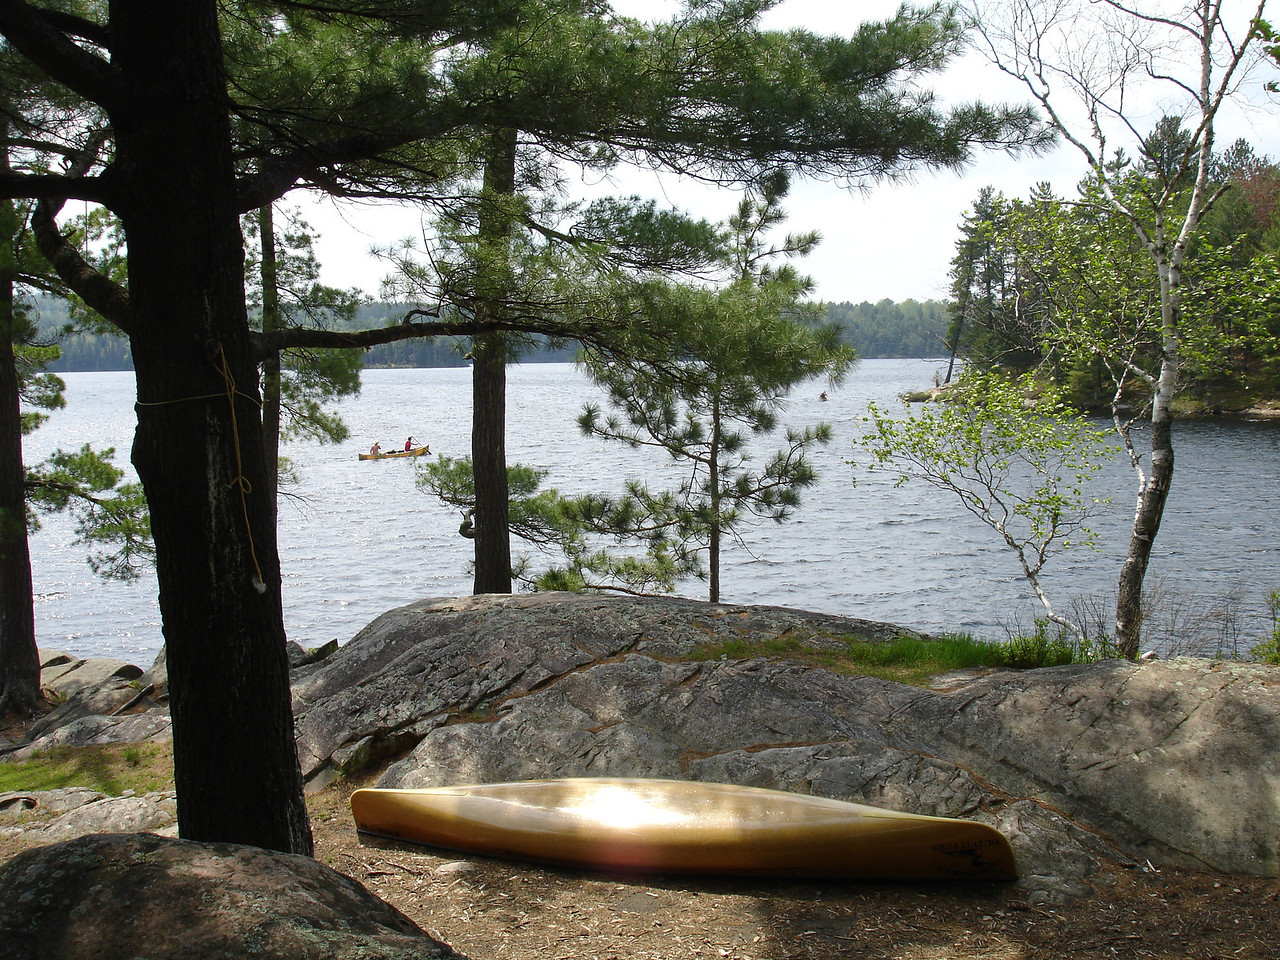 Campsite on Tom Thomson.  A few fishermen took the campsite on the next point.